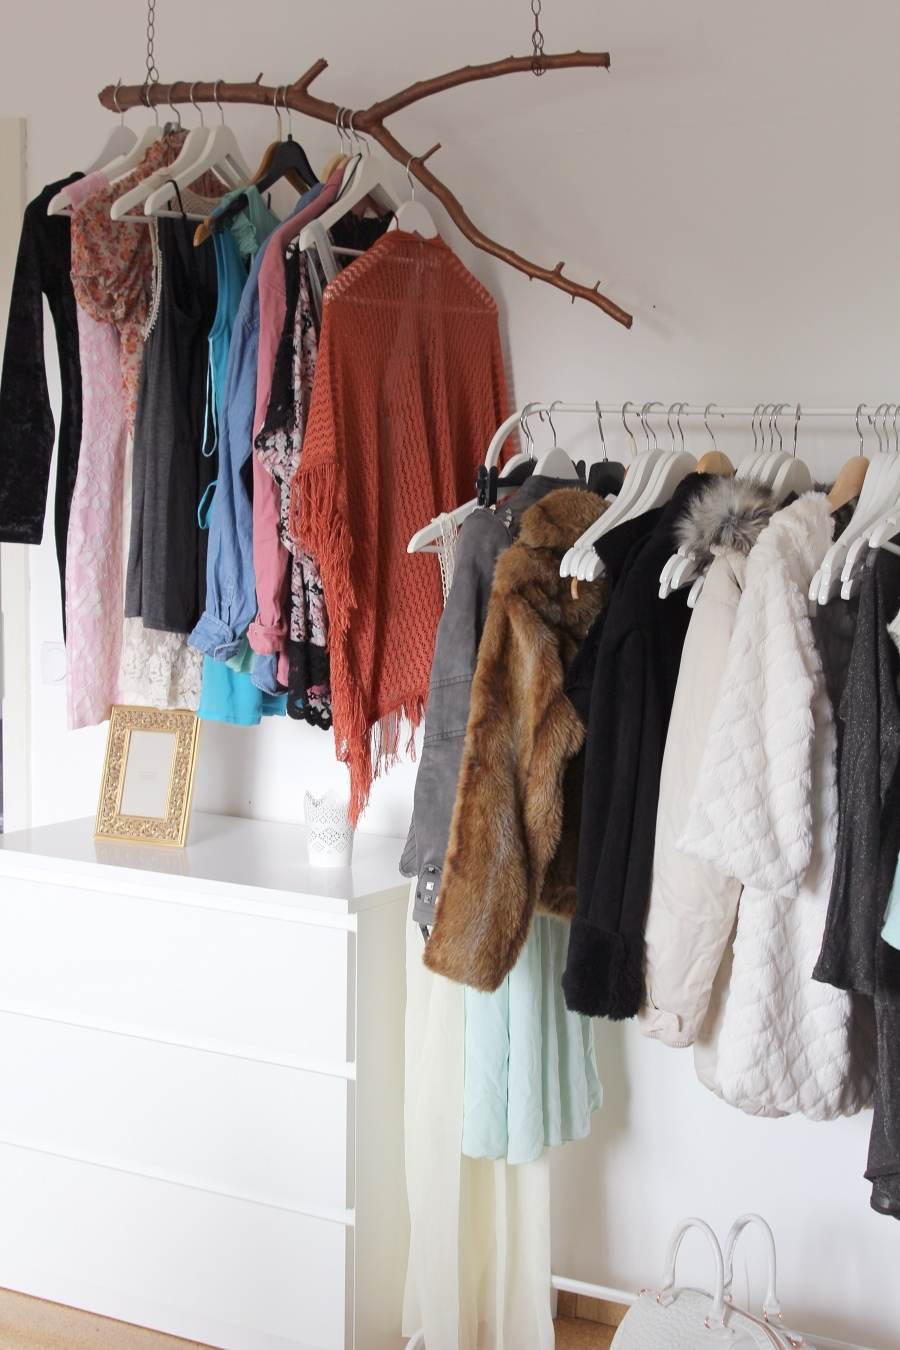 closet-branch-clothes-hanger-interior